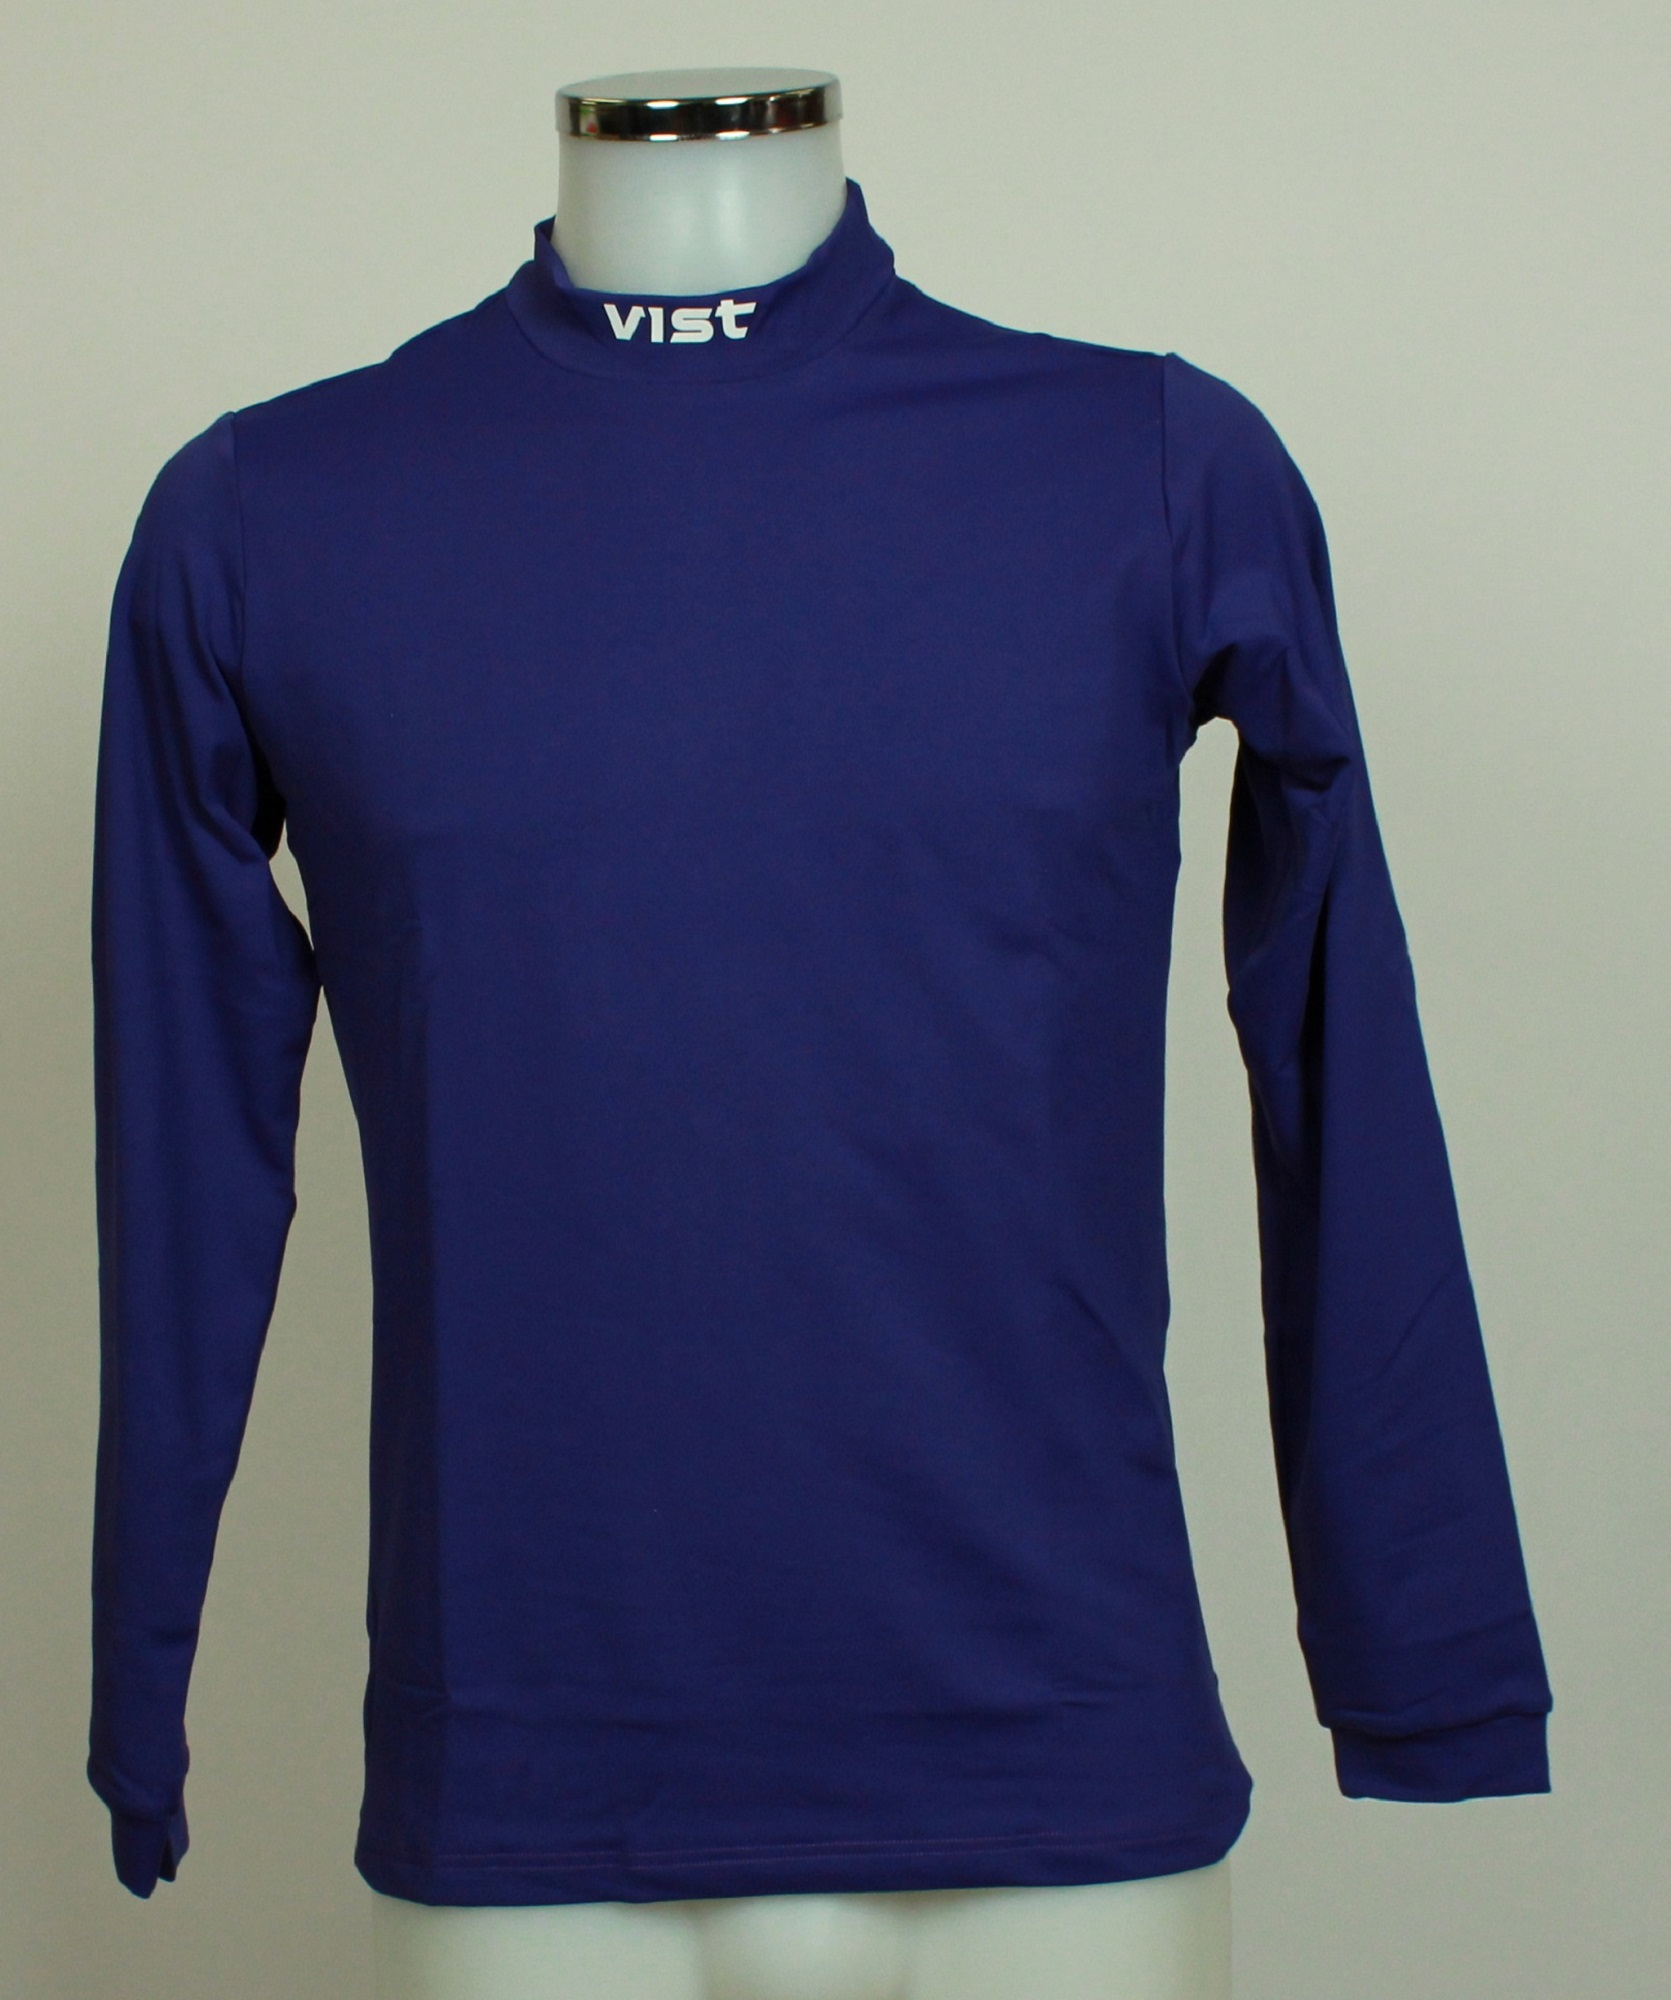 Vist Body Rollneck unisex